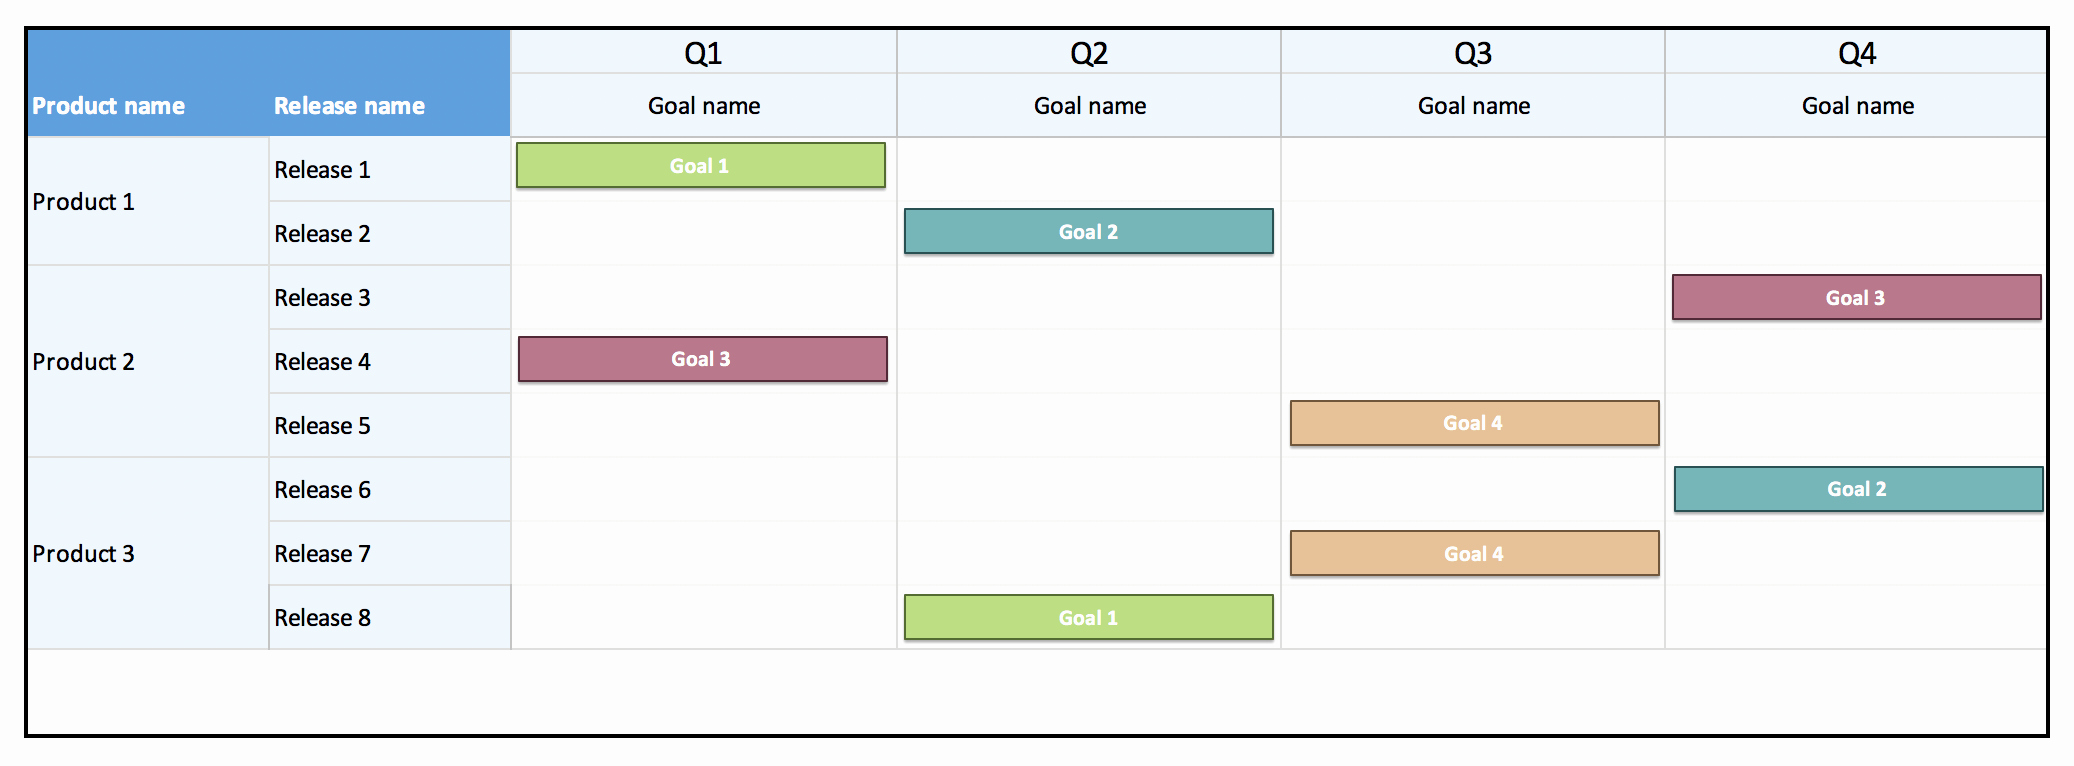 Technology Roadmap Template Excel Fresh 16 Free Product Roadmap Templates